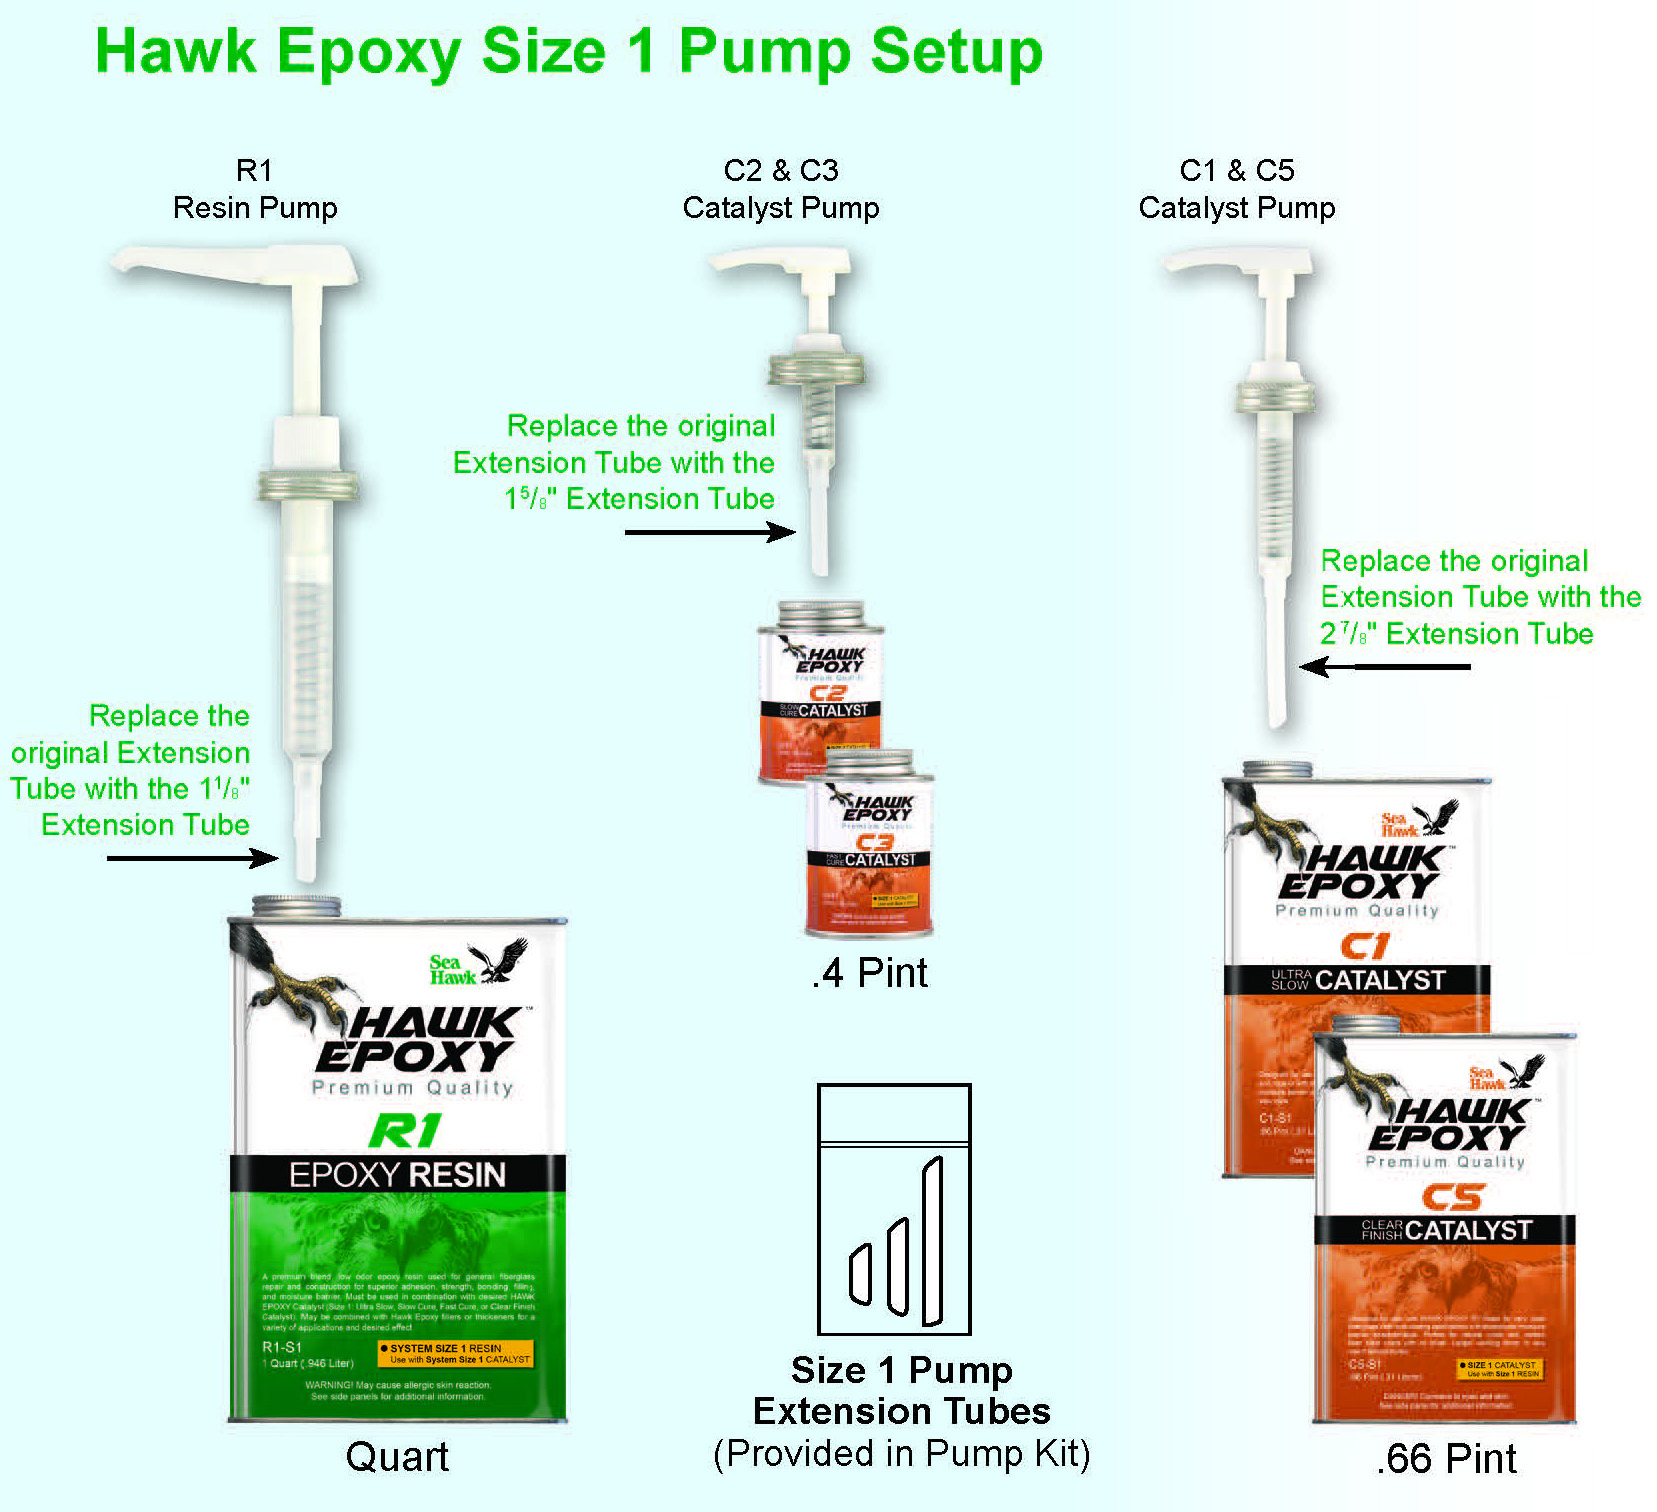 Converting Hawk Pumps to Size 1